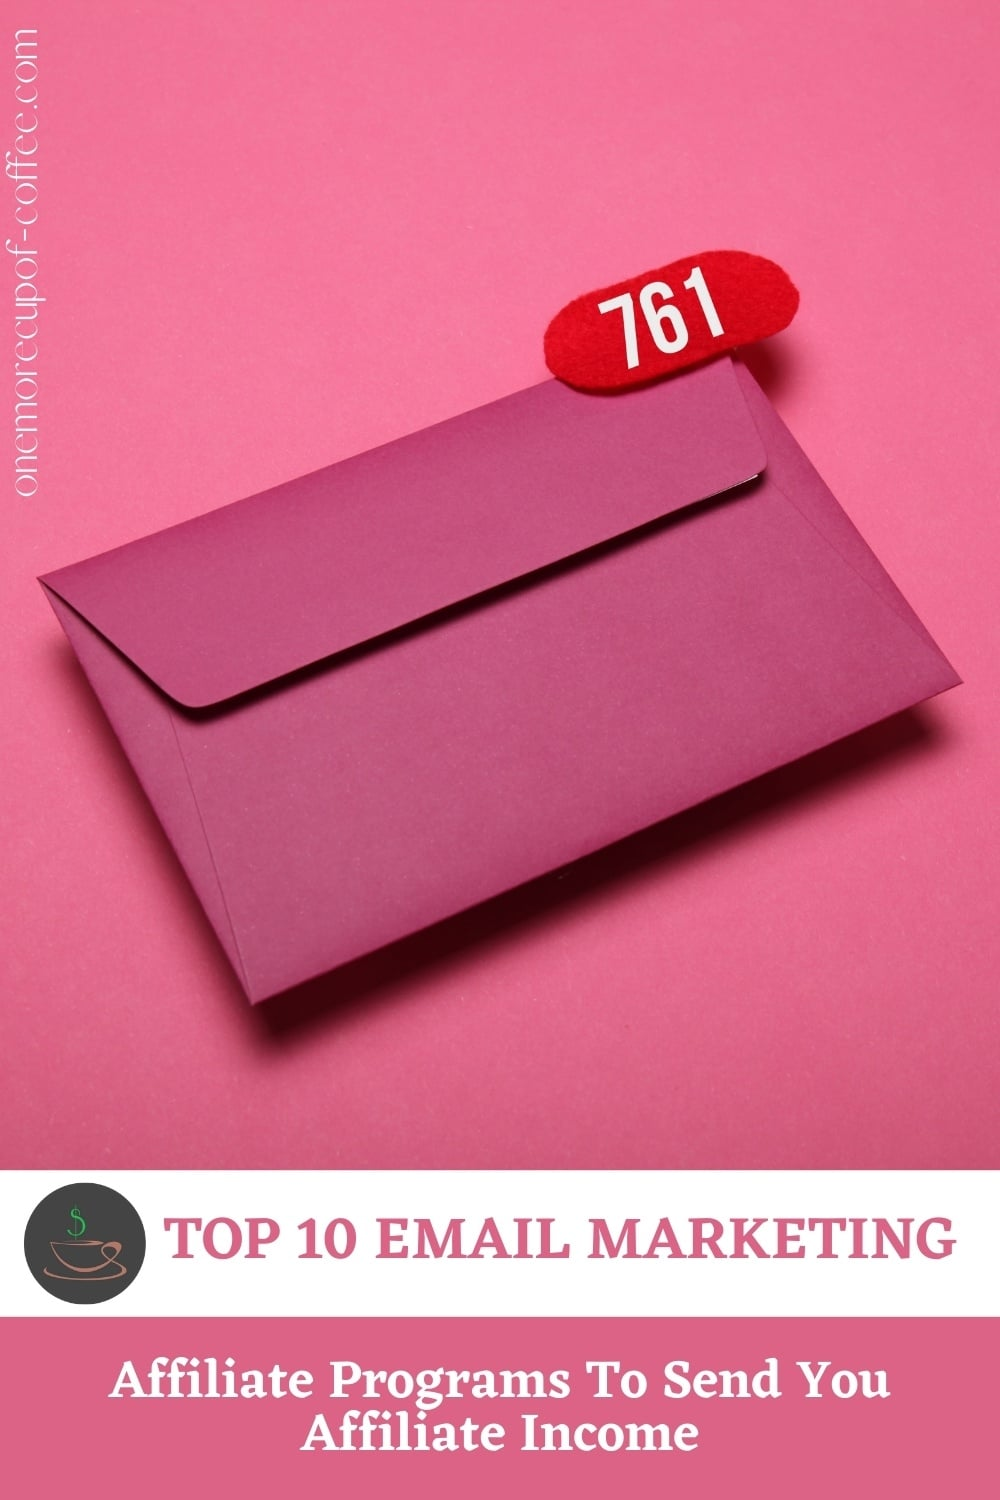 """on a pink background is a dark pink envelope signifying email with red counter on its upper right corner, with text overlay in white banner """"Top 10 Email Marketing Affiliate Programs To Send You Affiliate Income"""""""